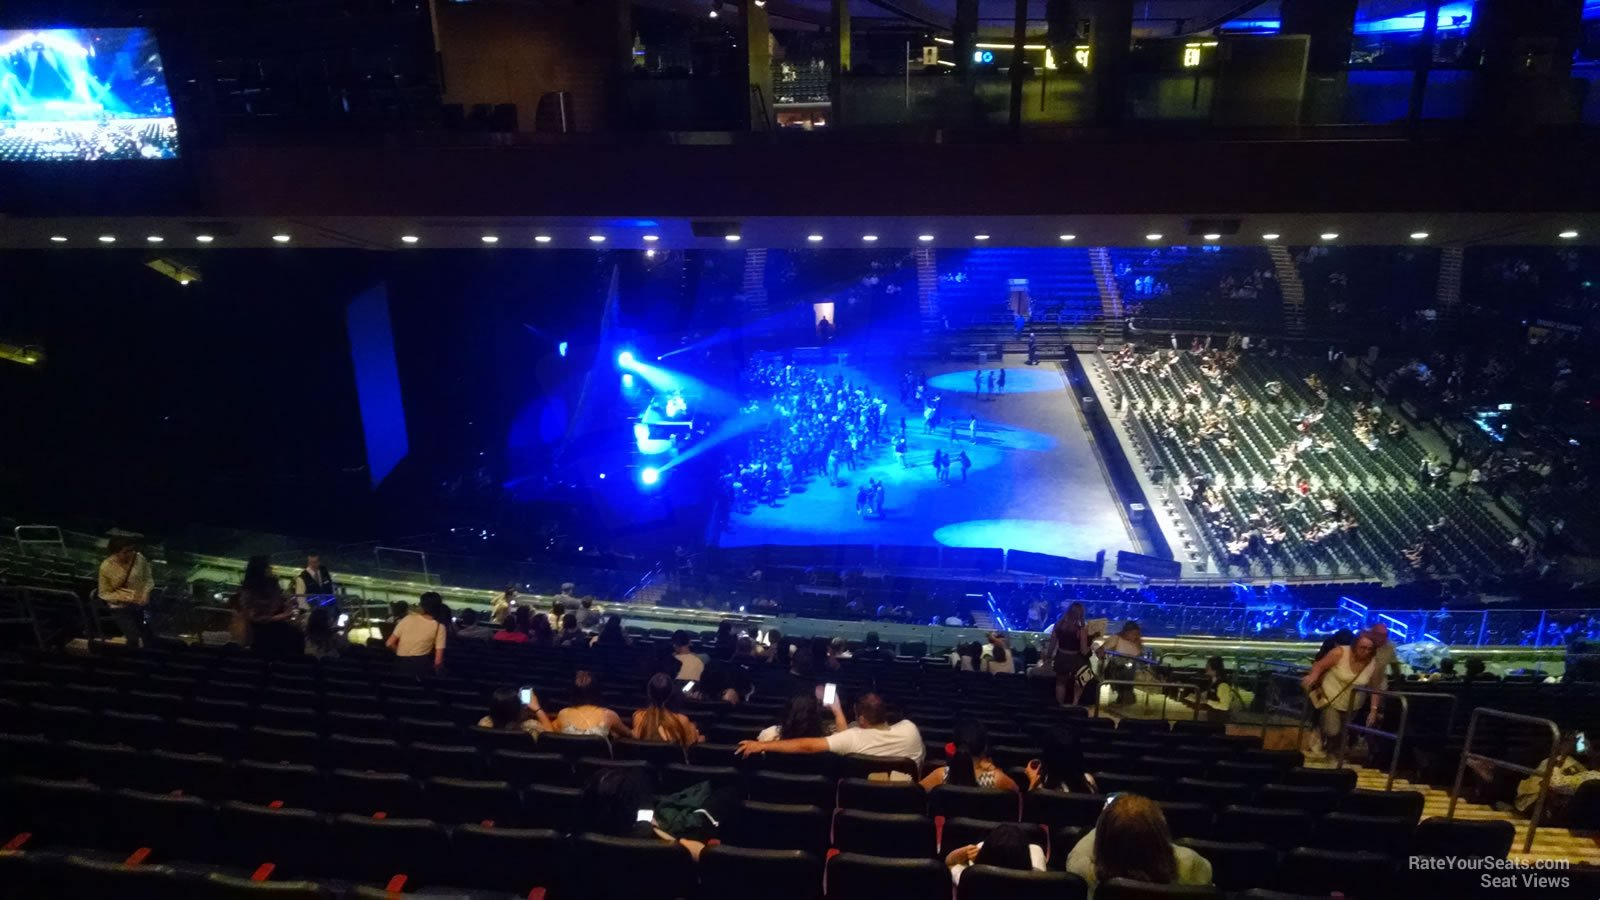 Madison Square Garden Section 223 Concert Seating